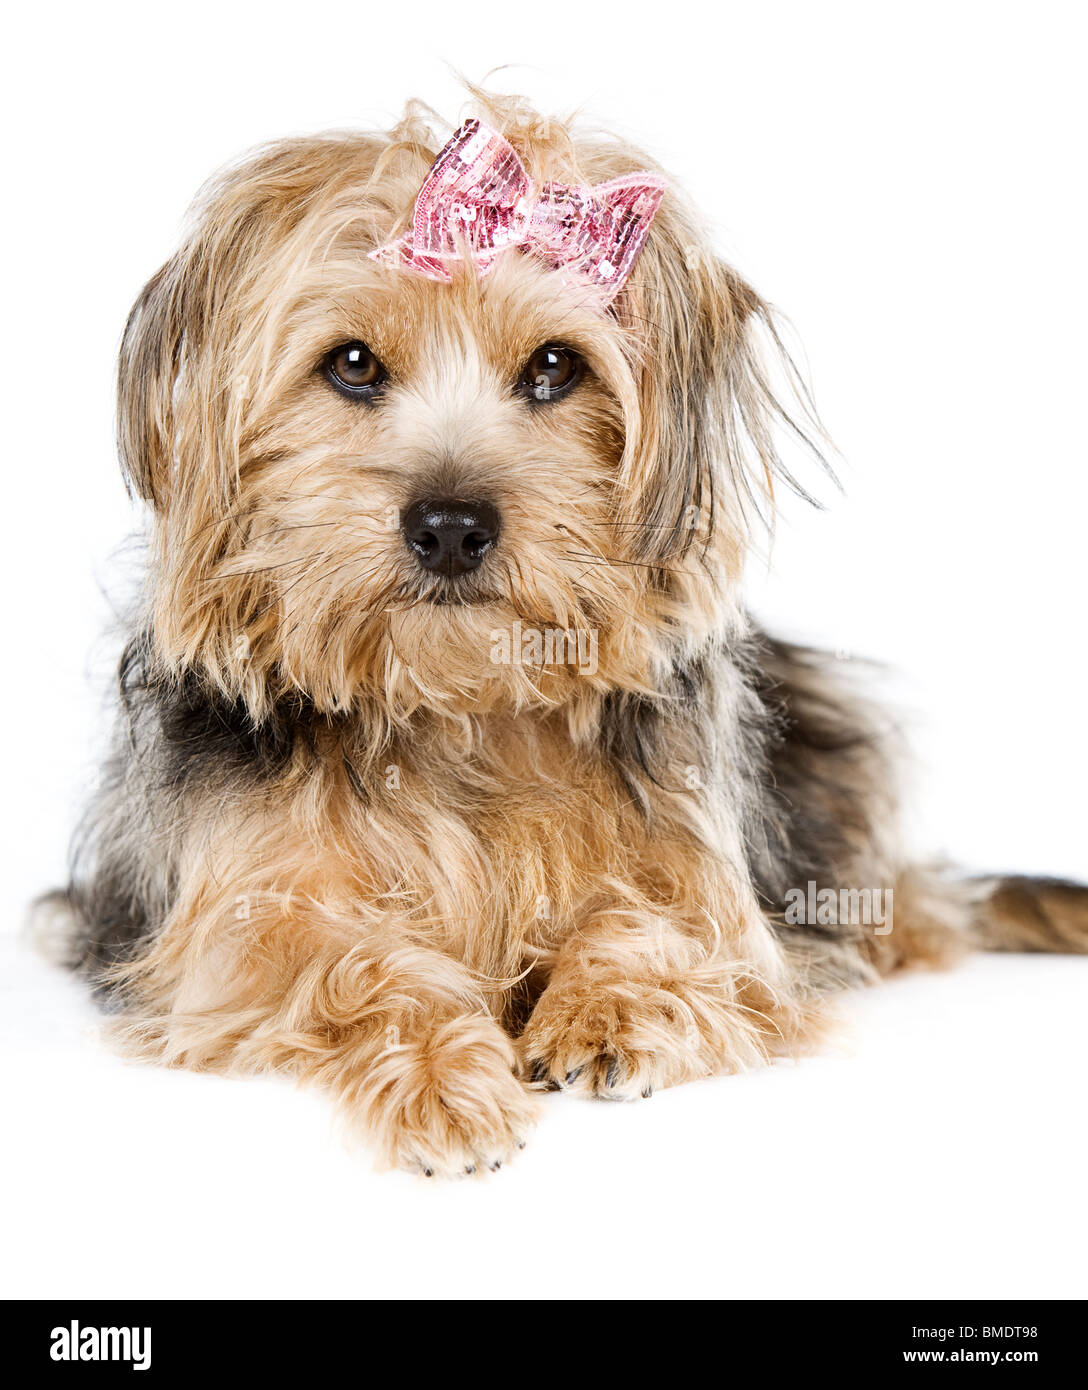 Beautiful Shot of a Cute Yorkshire Terrier Laying Down - Stock Image